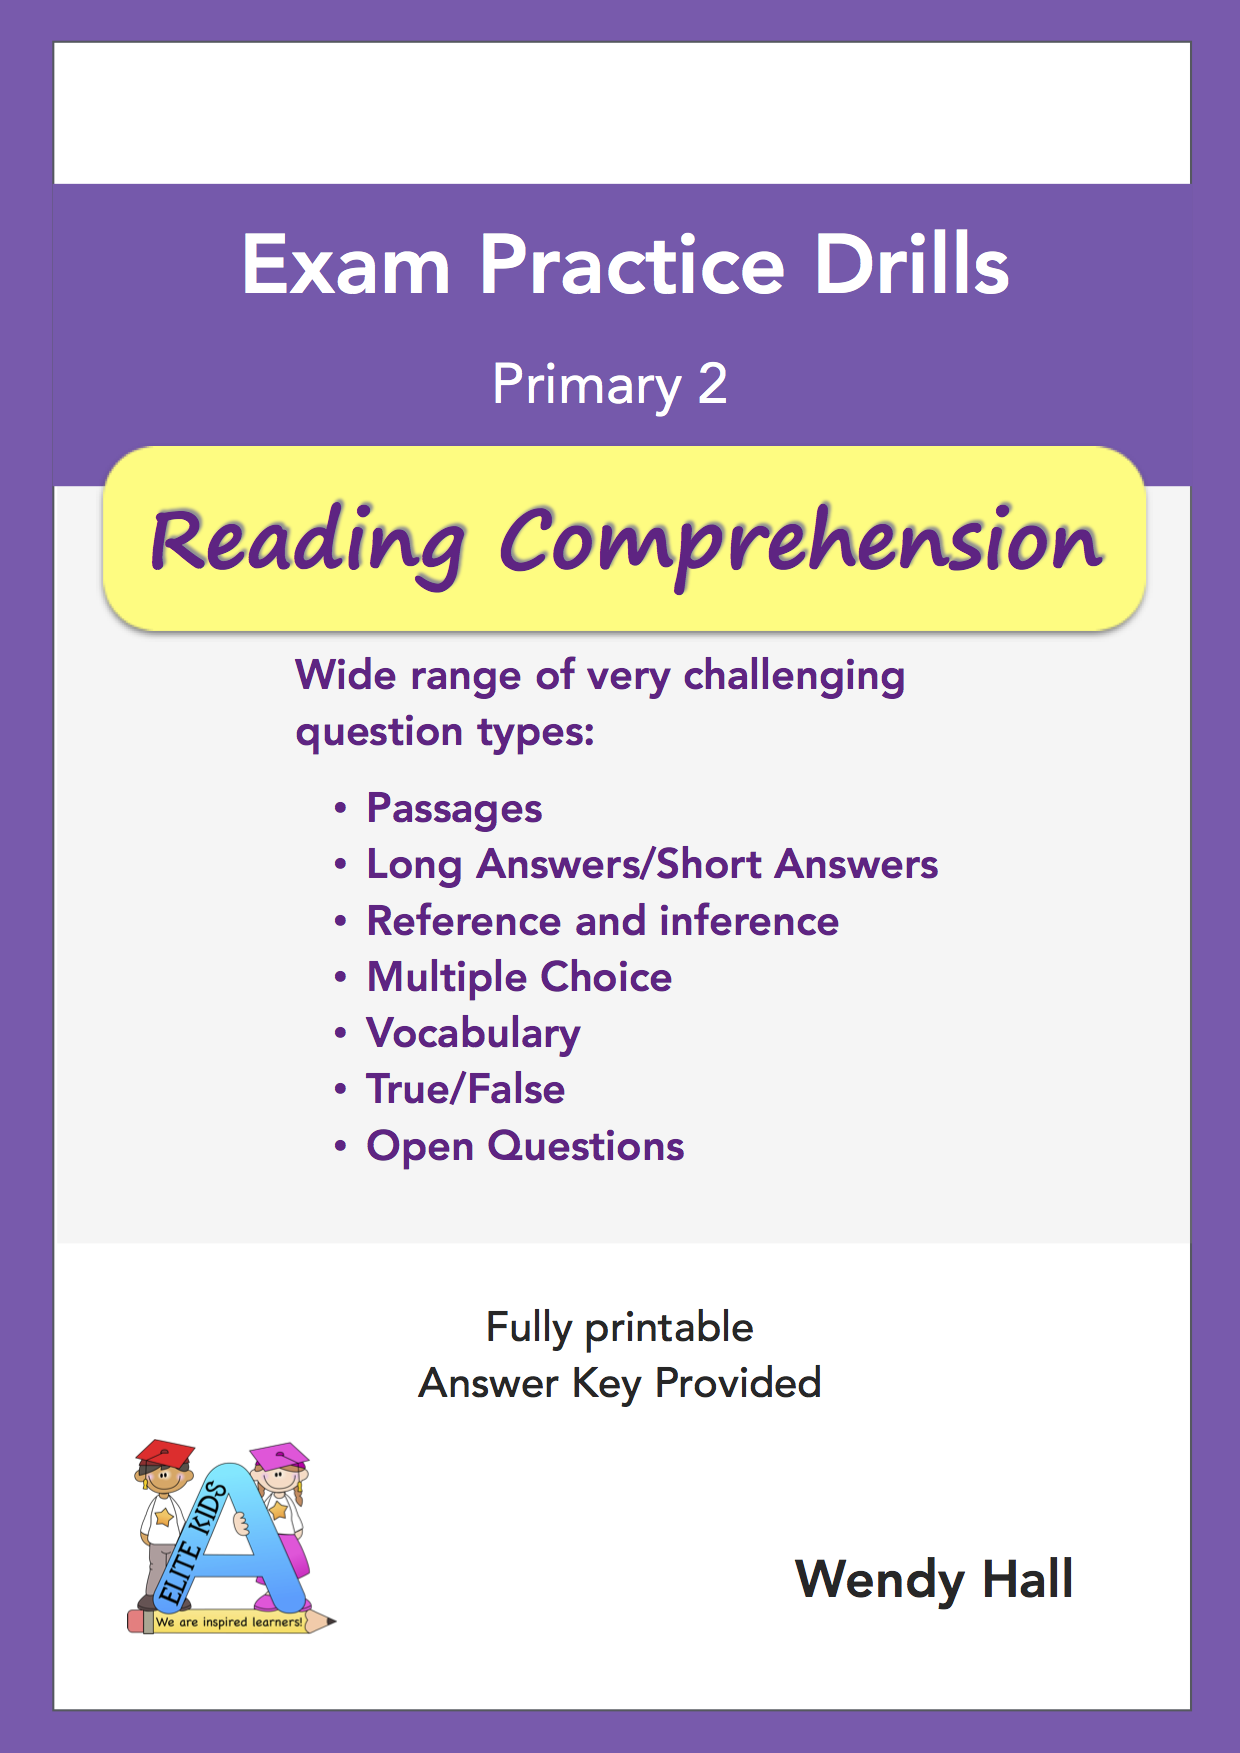 Elite Kids | Exam Practice Drills - Reading Comprehension - Primary 2